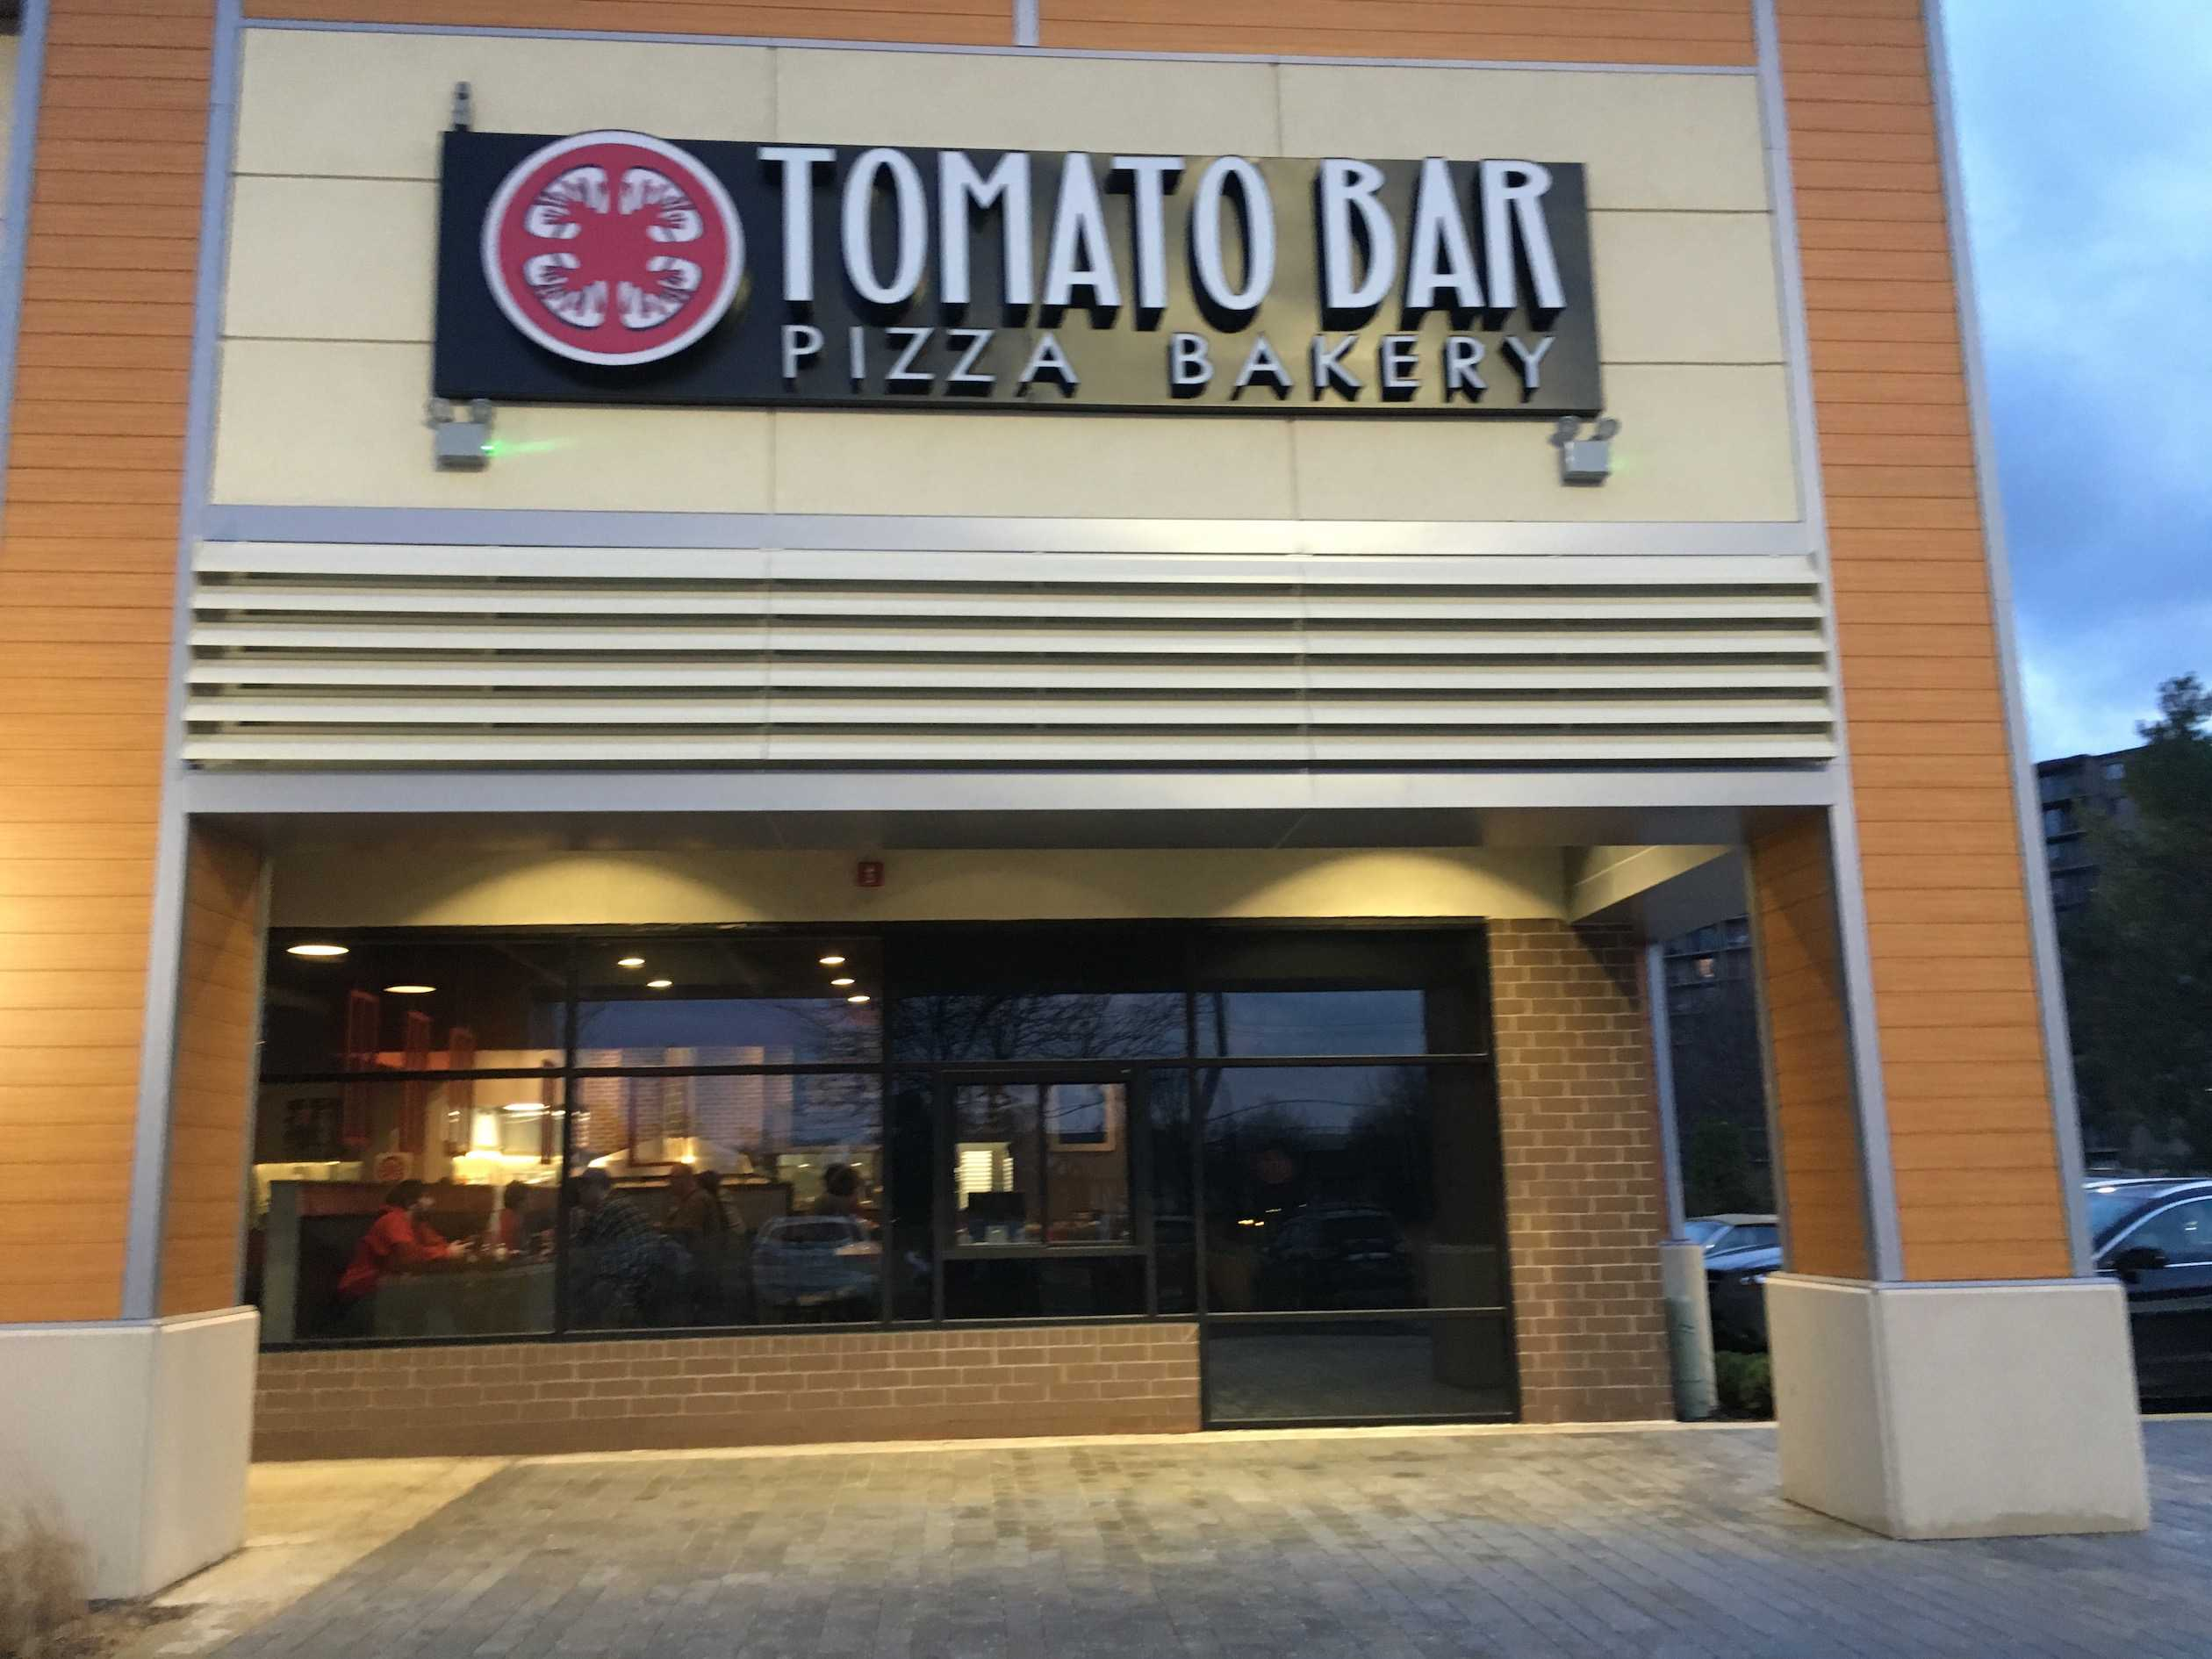 Tomato Bar, in Willowbrook, adds a fresh of breath air to the 63rd/Kingery region because of it's exquisite menu.